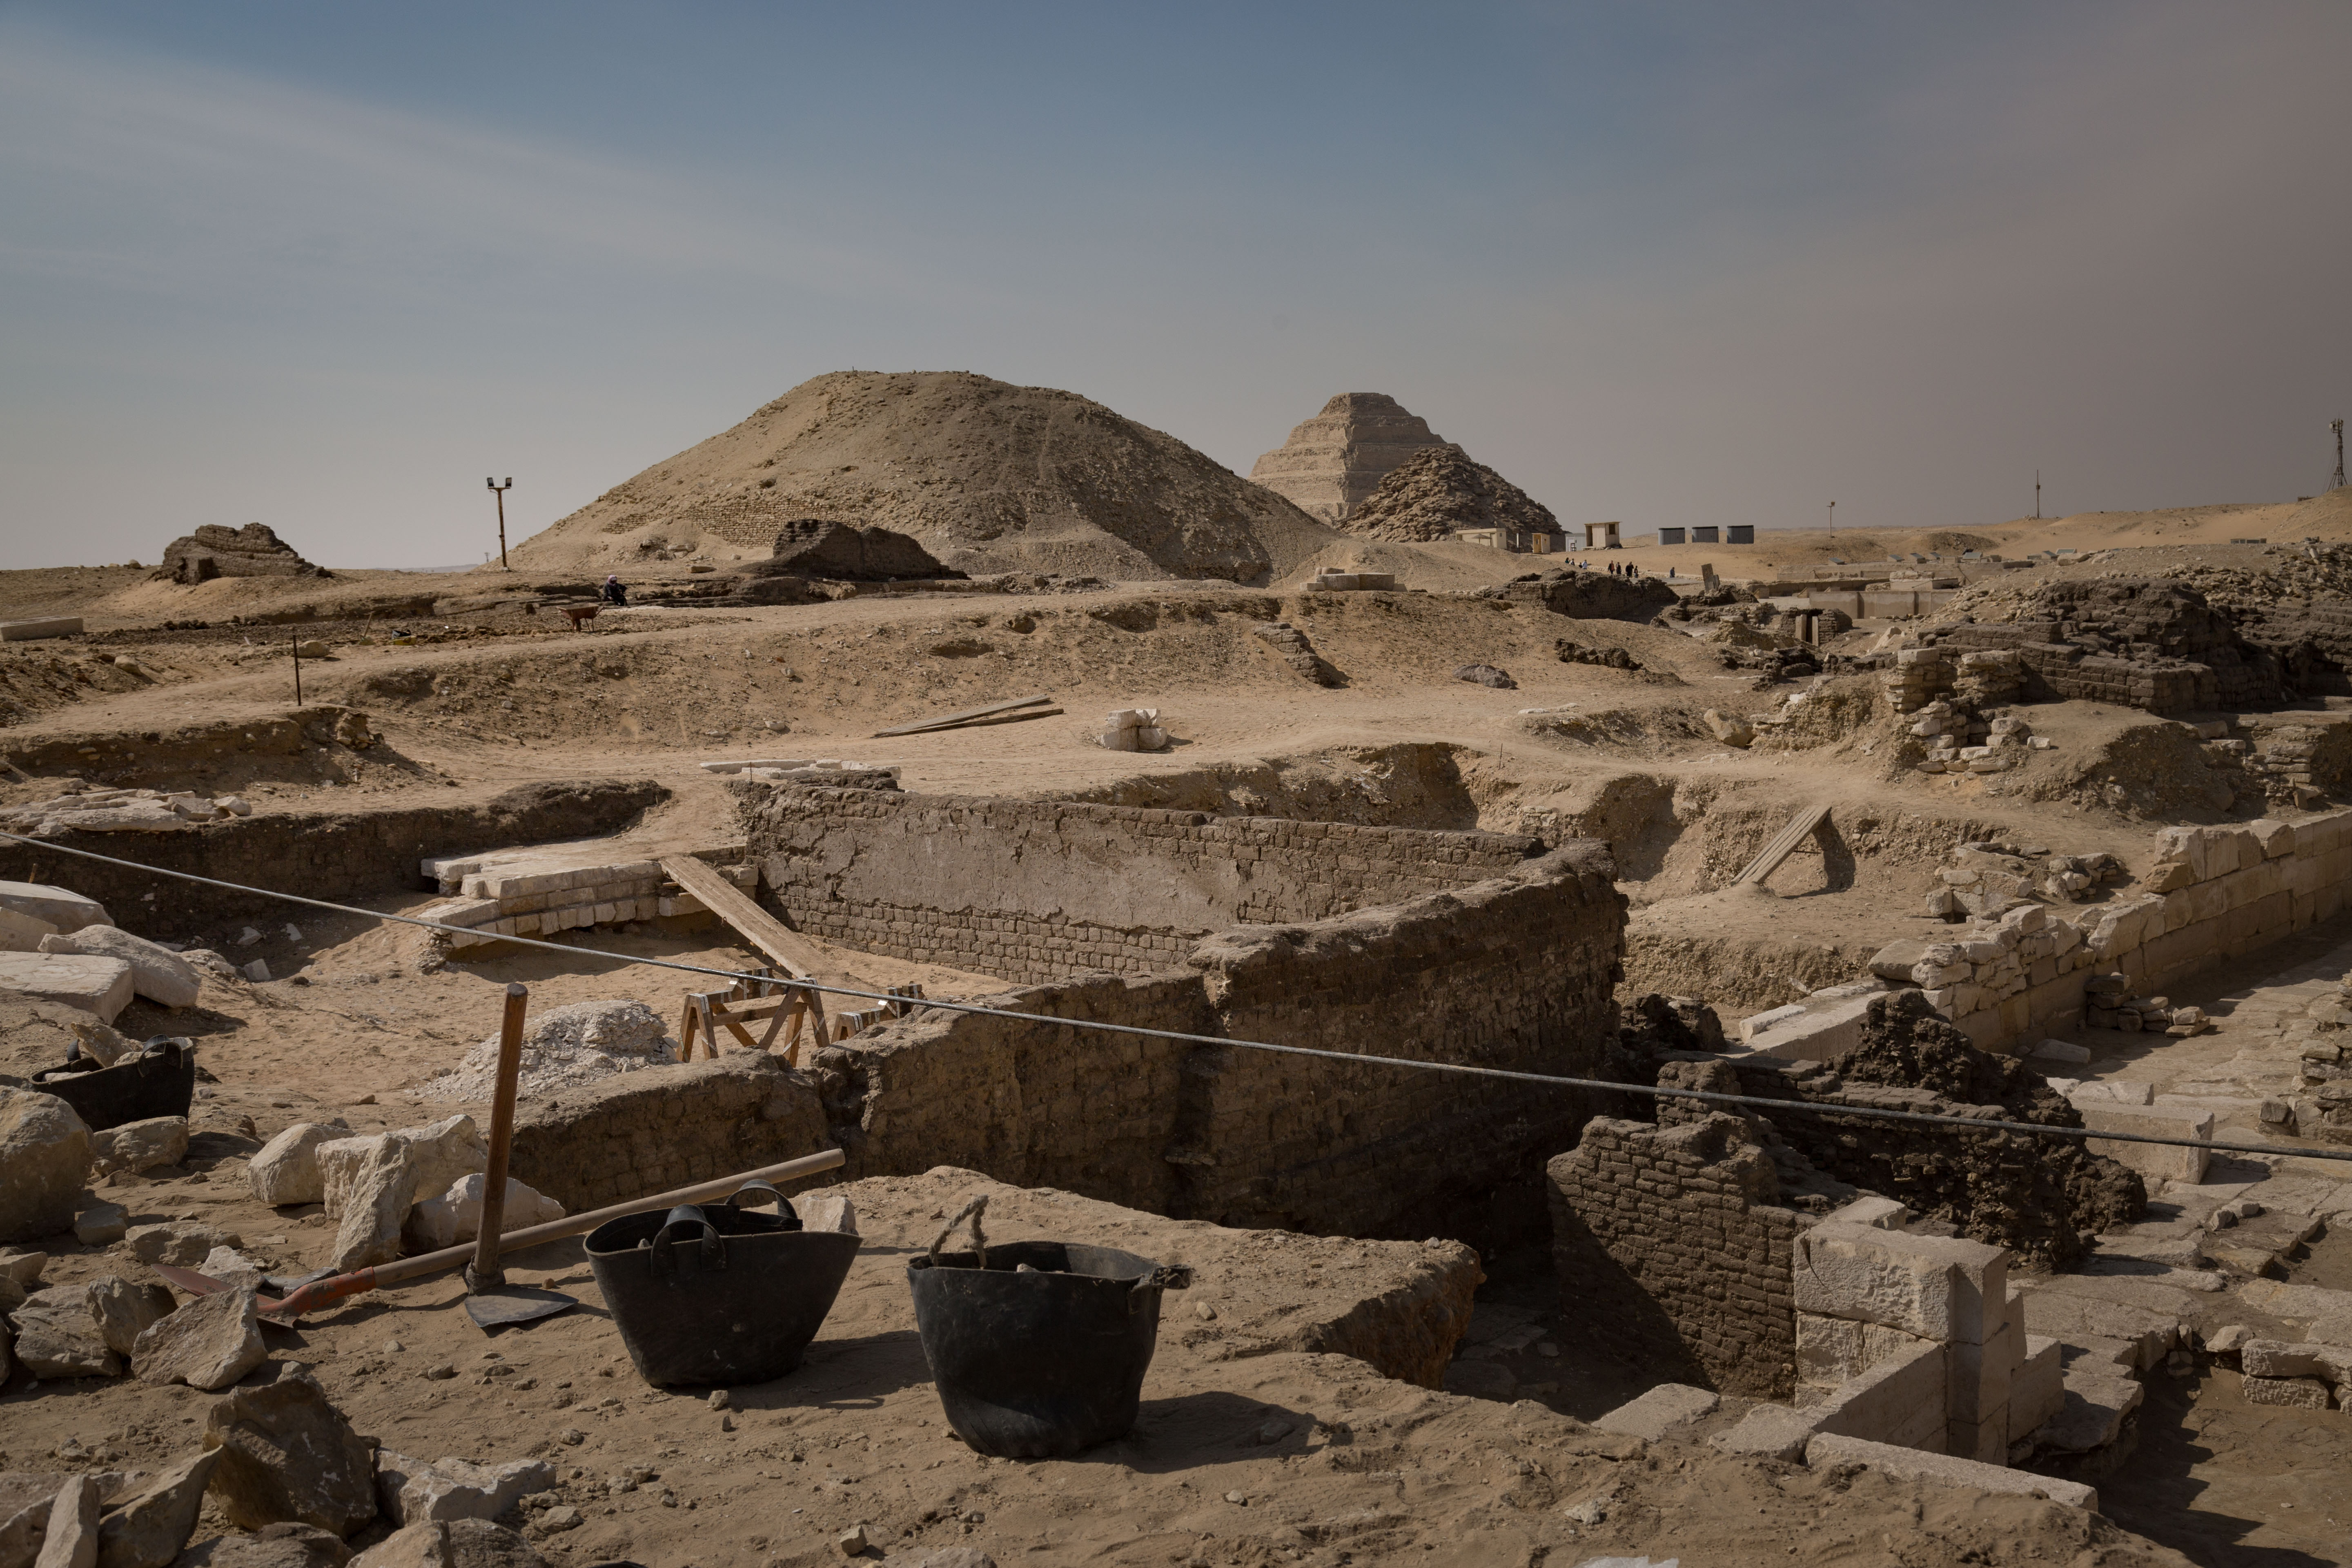 Renowned archaeologist Zahi Hawass's dig site at Saqqara, Egypt, in February. The discovery, among many others, of a previously unknown queen has reshaped researchers' understanding of ancient Egyptians. MUST CREDIT: photo for The Washington Post by Sima Diab.